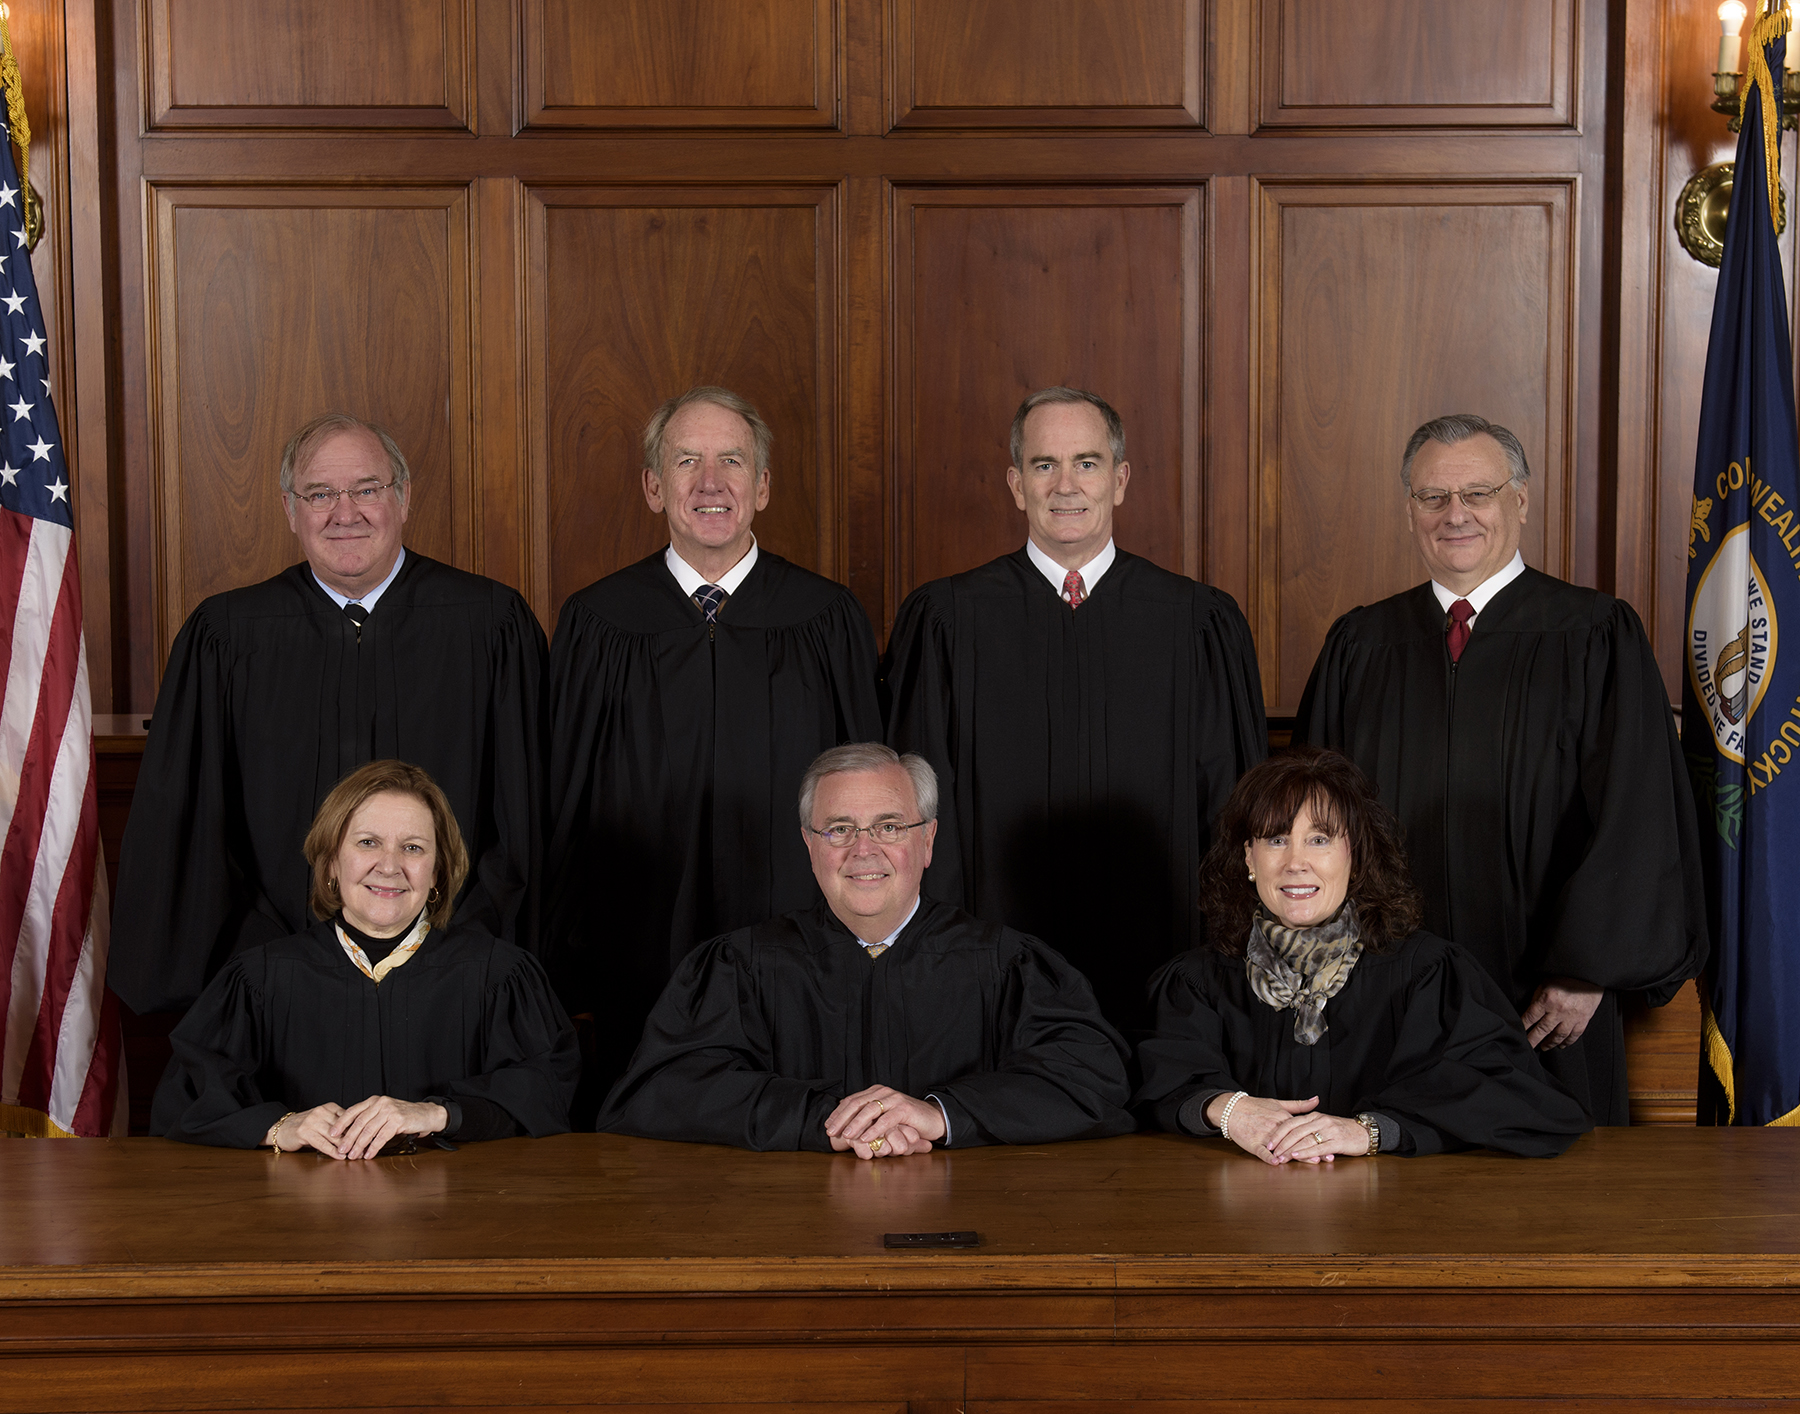 Supreme Court of Kentucky to hear arguments Aug. 16-18 in Frankfort